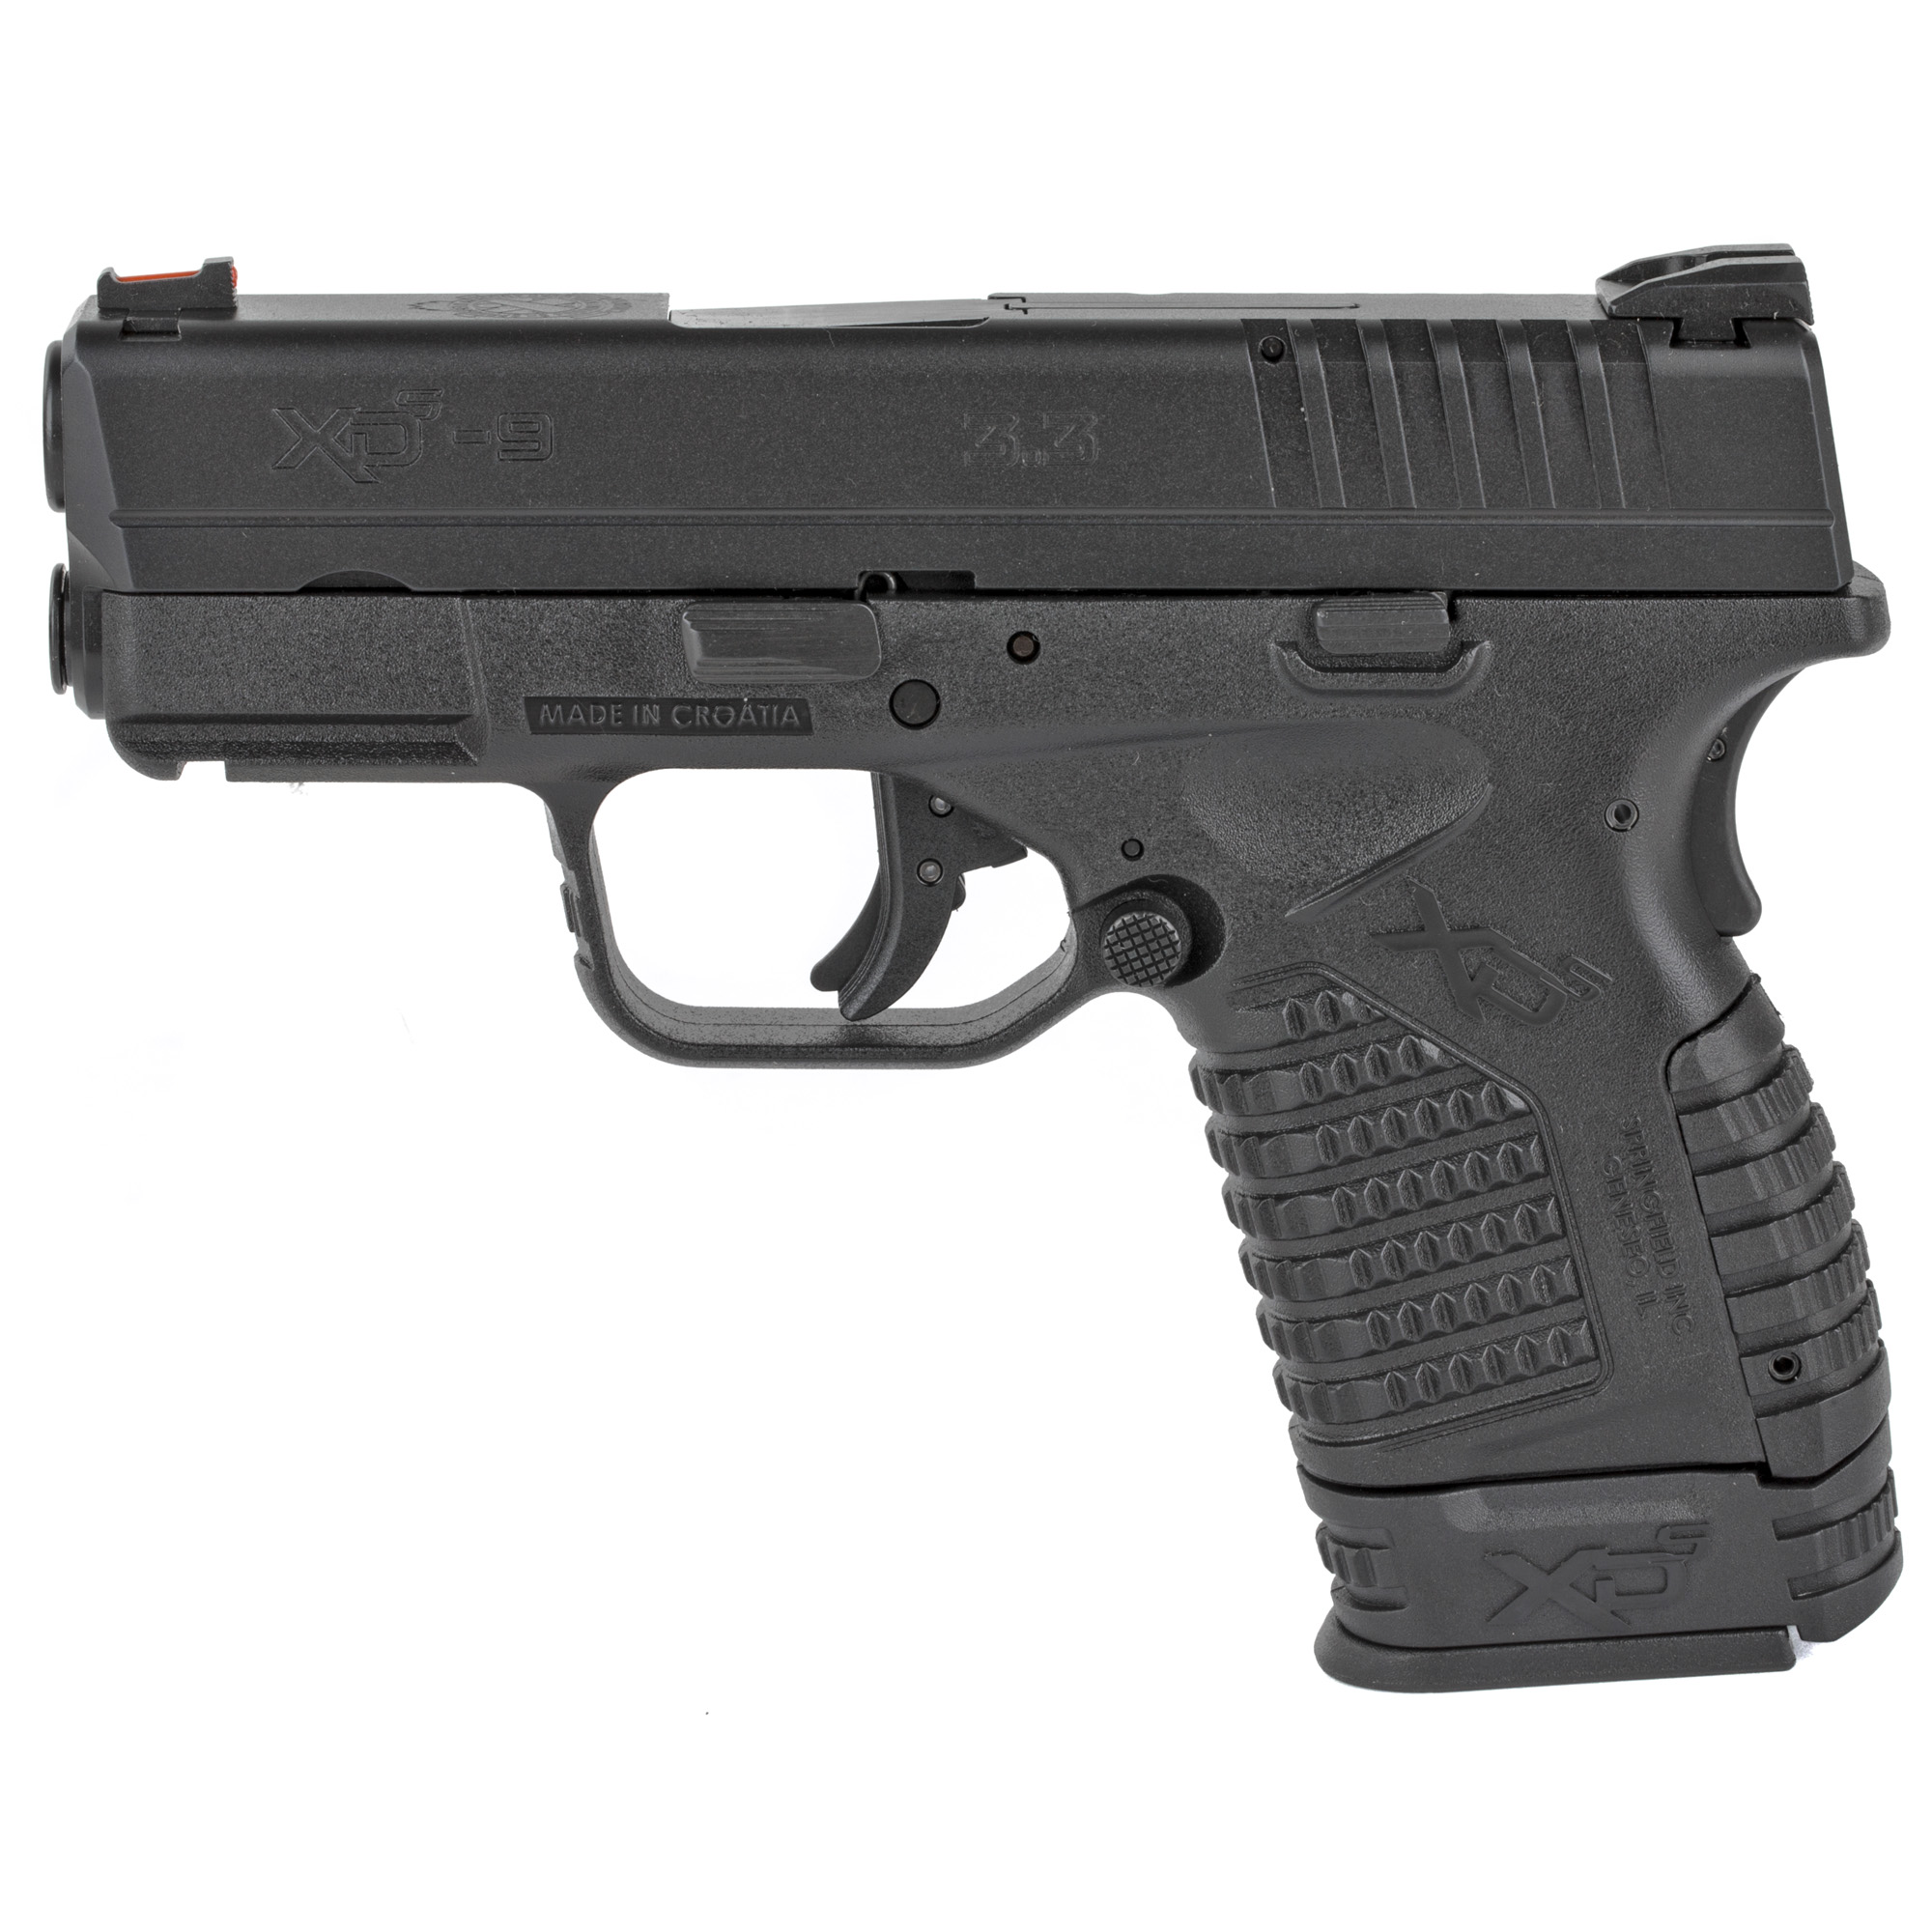 """The XD-S(R) 3.3"""" Single Stack 9mm offers so much that you'll be astonished that it all fits in the small"""" concealable profile. The XD-S(R) Single Stack from Springfield Armory(R) has forever changed what you can expect out of your daily carry pistol. Use your XD-S(R) Single Stack with an X-Tension(TM) magazine and you'll find that your carry pistol has grown into something that will astonish and delight you on the range. Use a flush-fitting magazine when you carry it"""" and it shrinks such that you'll forget it's there. If you're looking for the most available capacity in the most concealable package"""" you should pick up an XD-S(R) 3.3"""" Single Stack in 9mm. You don't have to settle for a larger gun to gain shooting comfort. Nor do you have to sacrifice size for capacity. Hold an XD-S(R) 3.3"""" Single Stack today"""" and you'll want to shoot it. Put it in your holster"""" and you'll find that it's Noticeably Unnoticeable(TM). Includes one 7-round magazine and one 8-round magazine."""